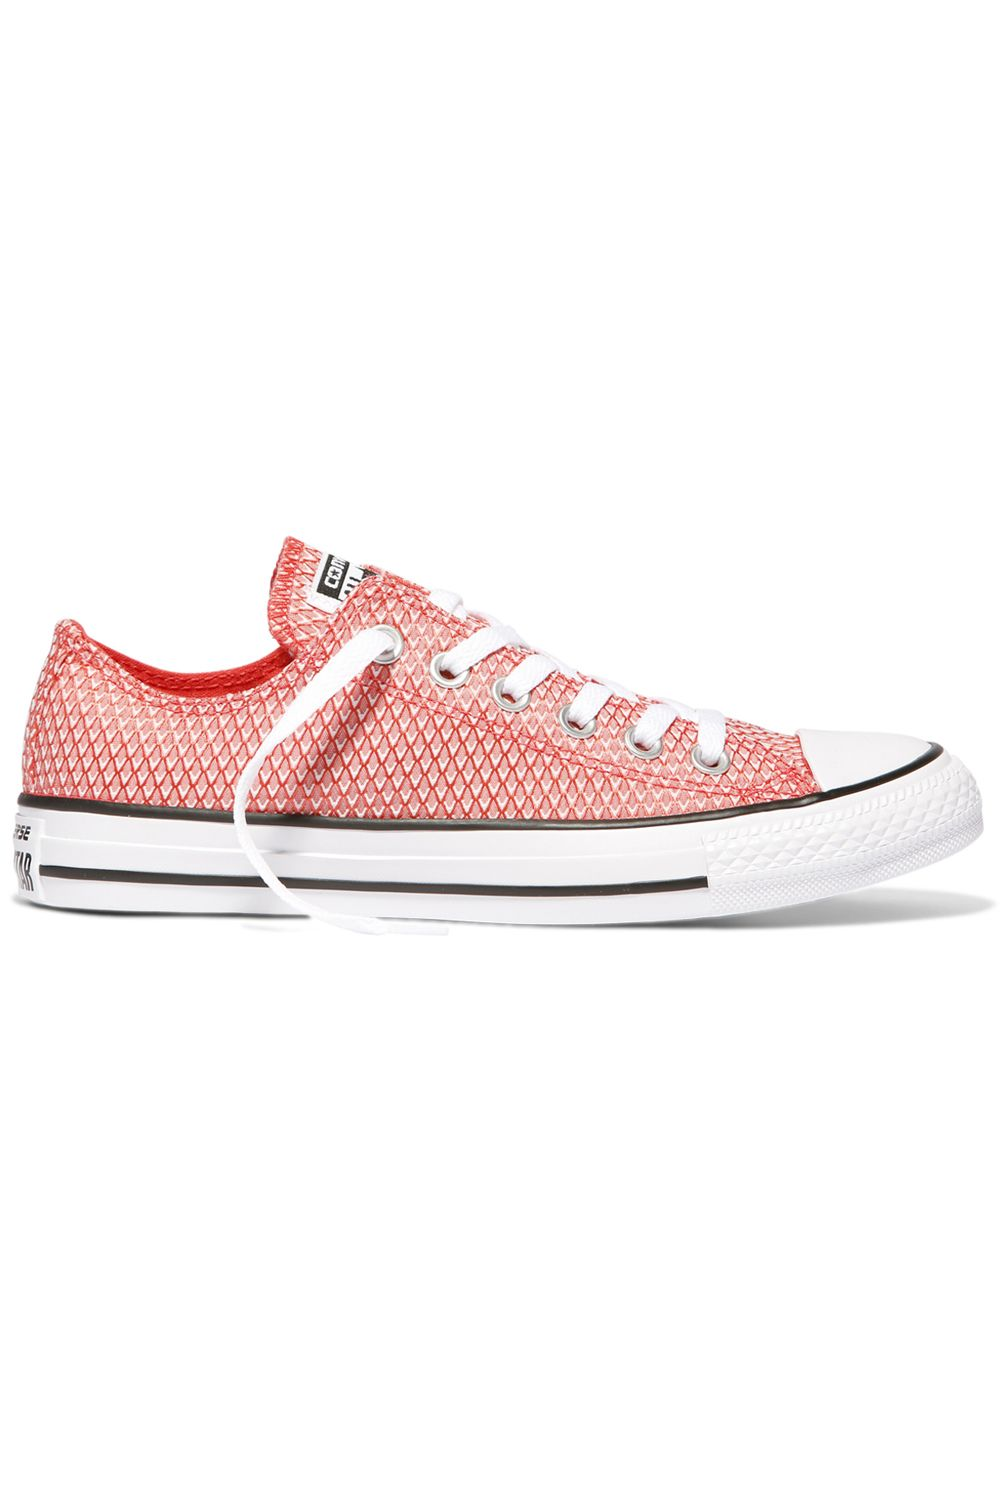 Tenis Converse CHUCK TAYLOR ALL STAR Ultra Red/Black/White